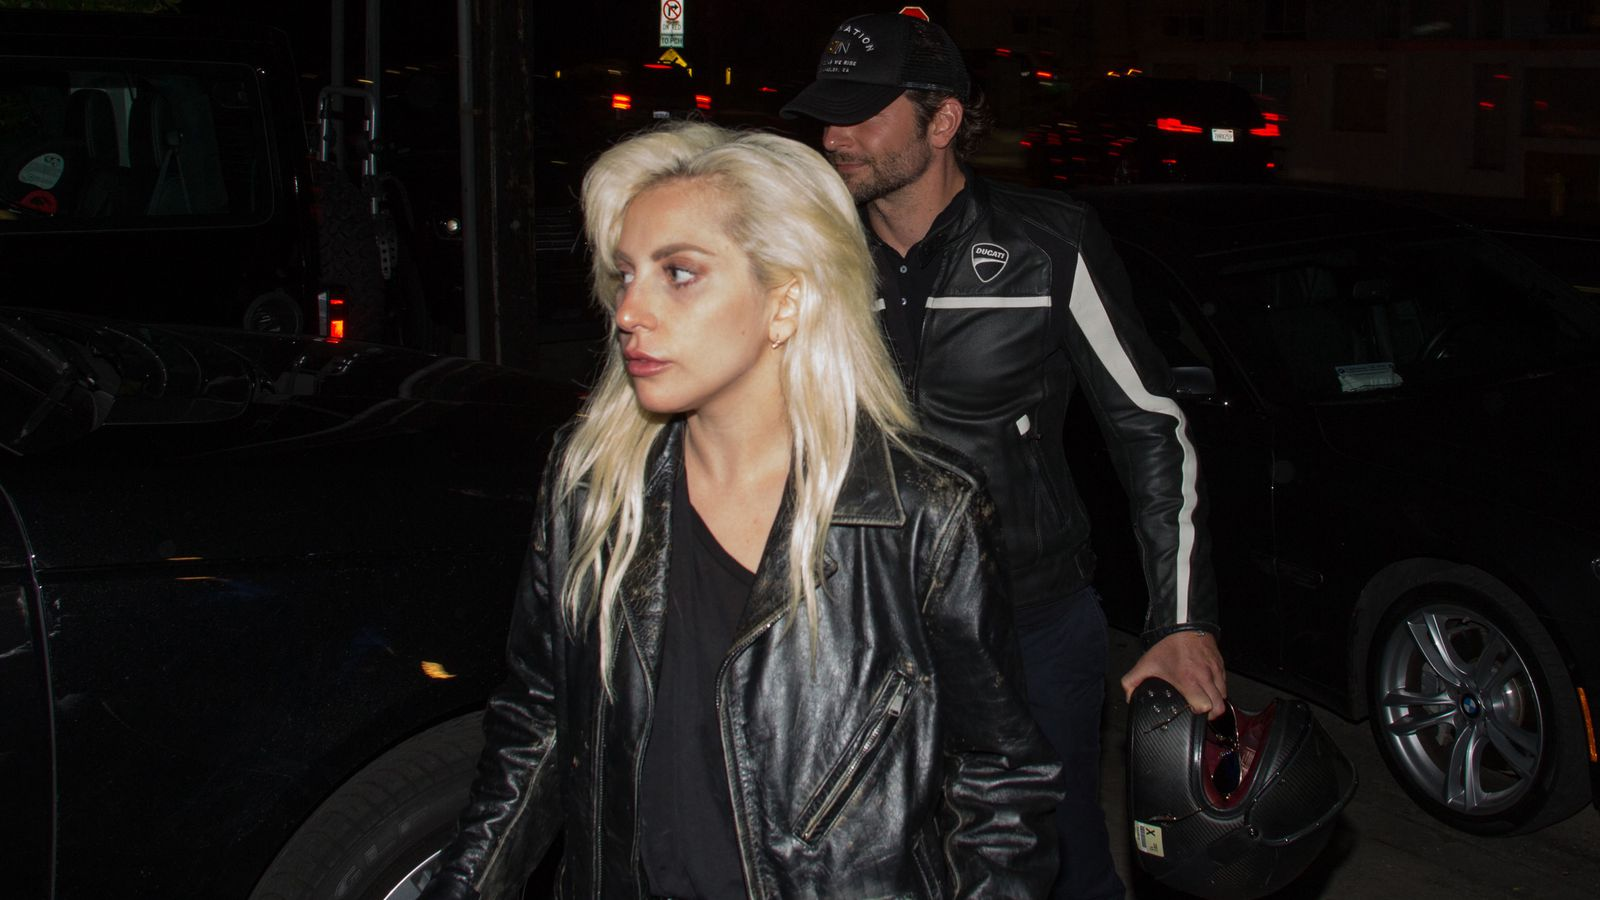 The first trailer for A Star Is Born is here! The upcoming movie starring Lady Gaga and Bradley Cooper is set to hit theaters in October and now were